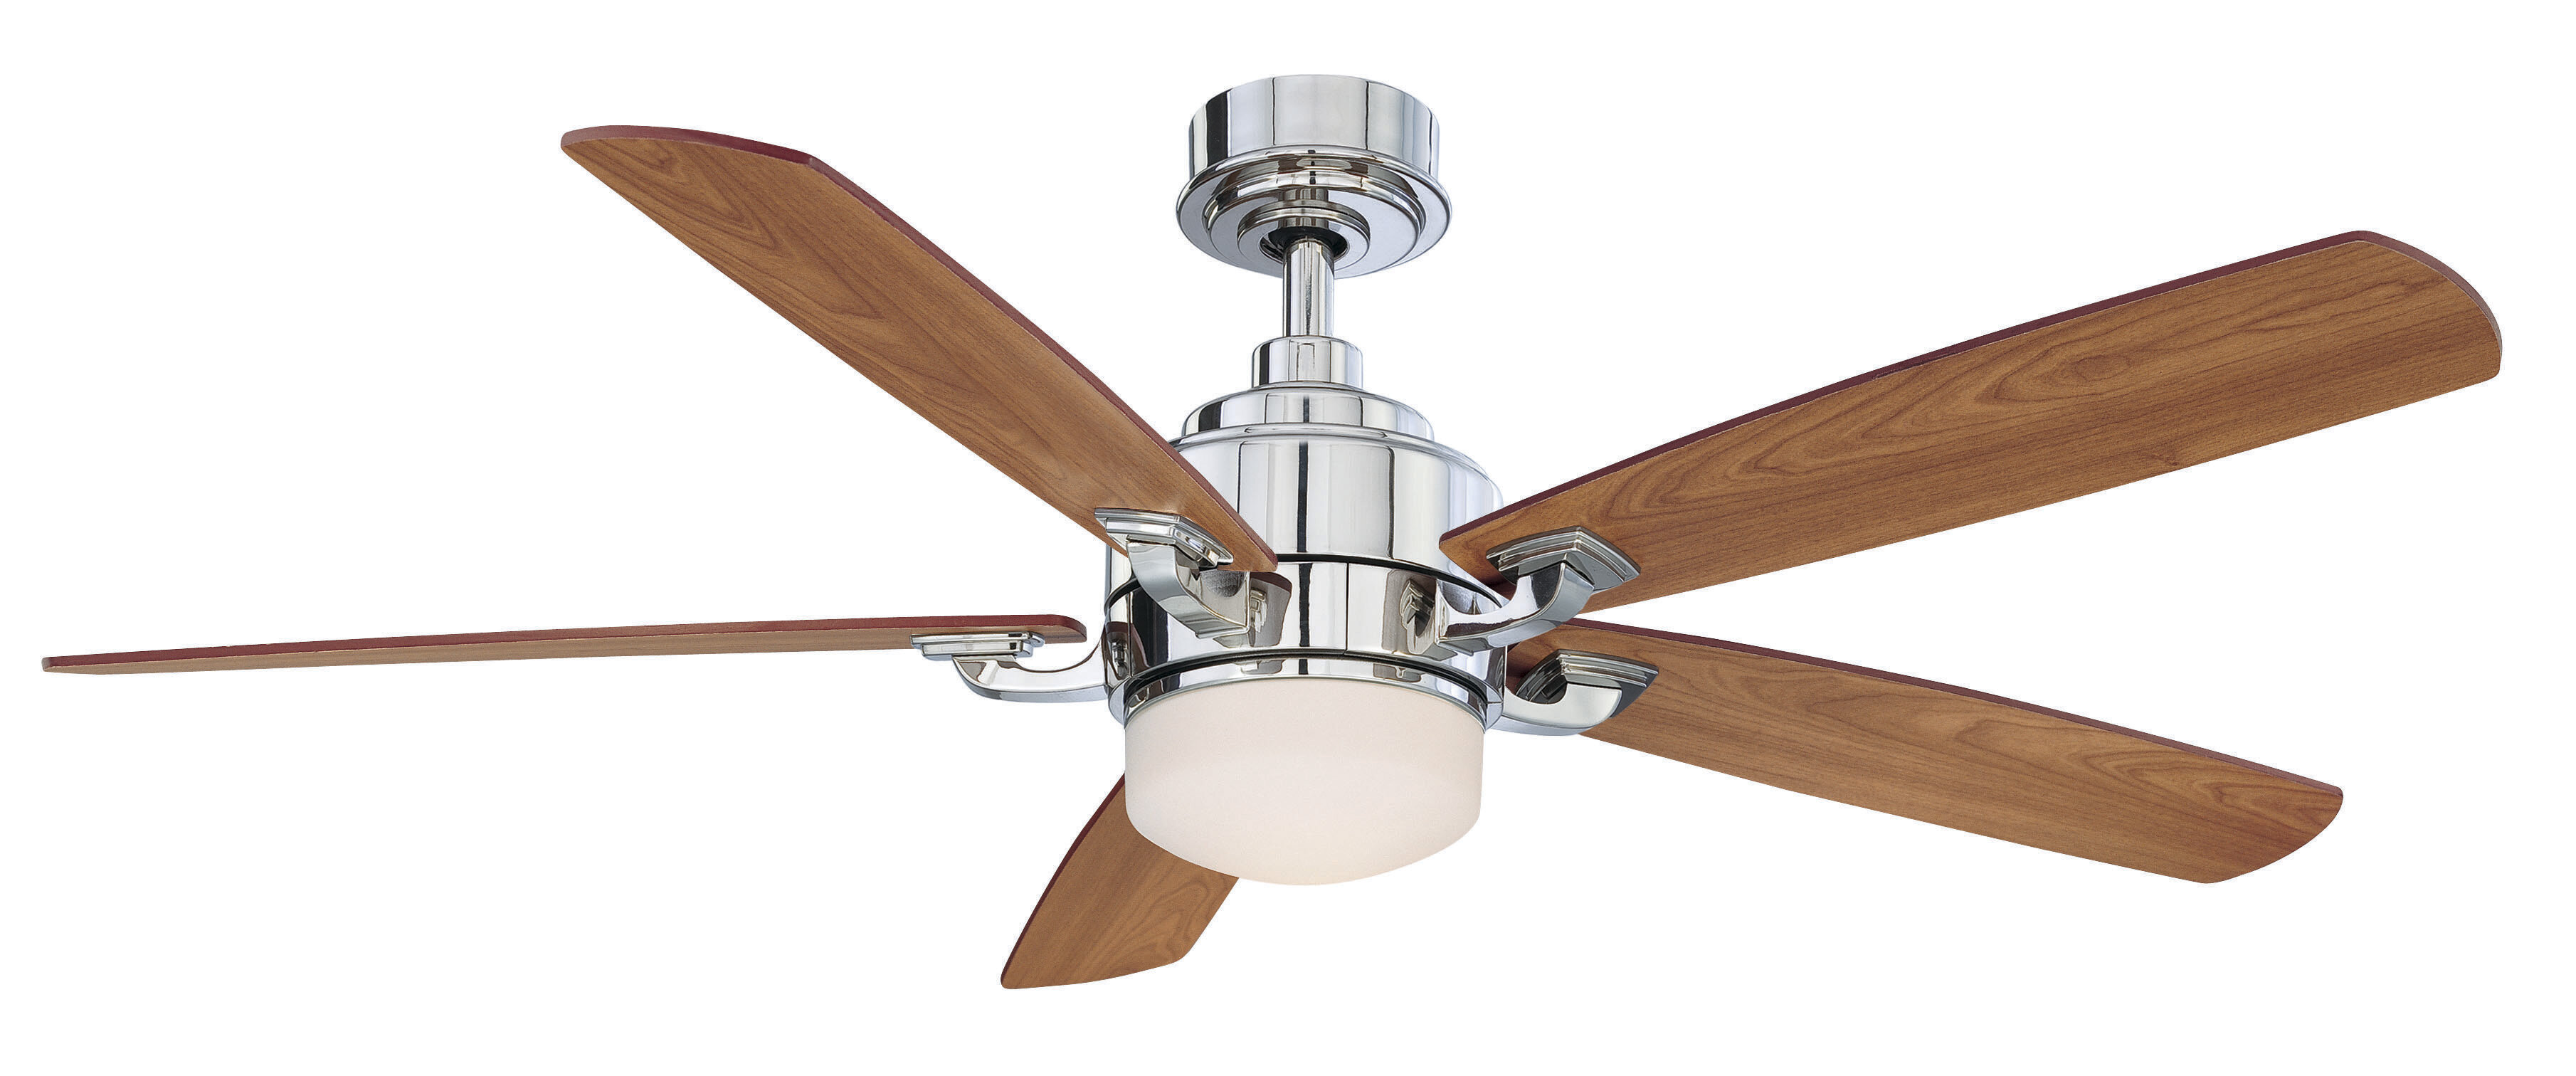 heating cooling regular with prices listing angus heller med bulbs product ceiling compare light fans fan